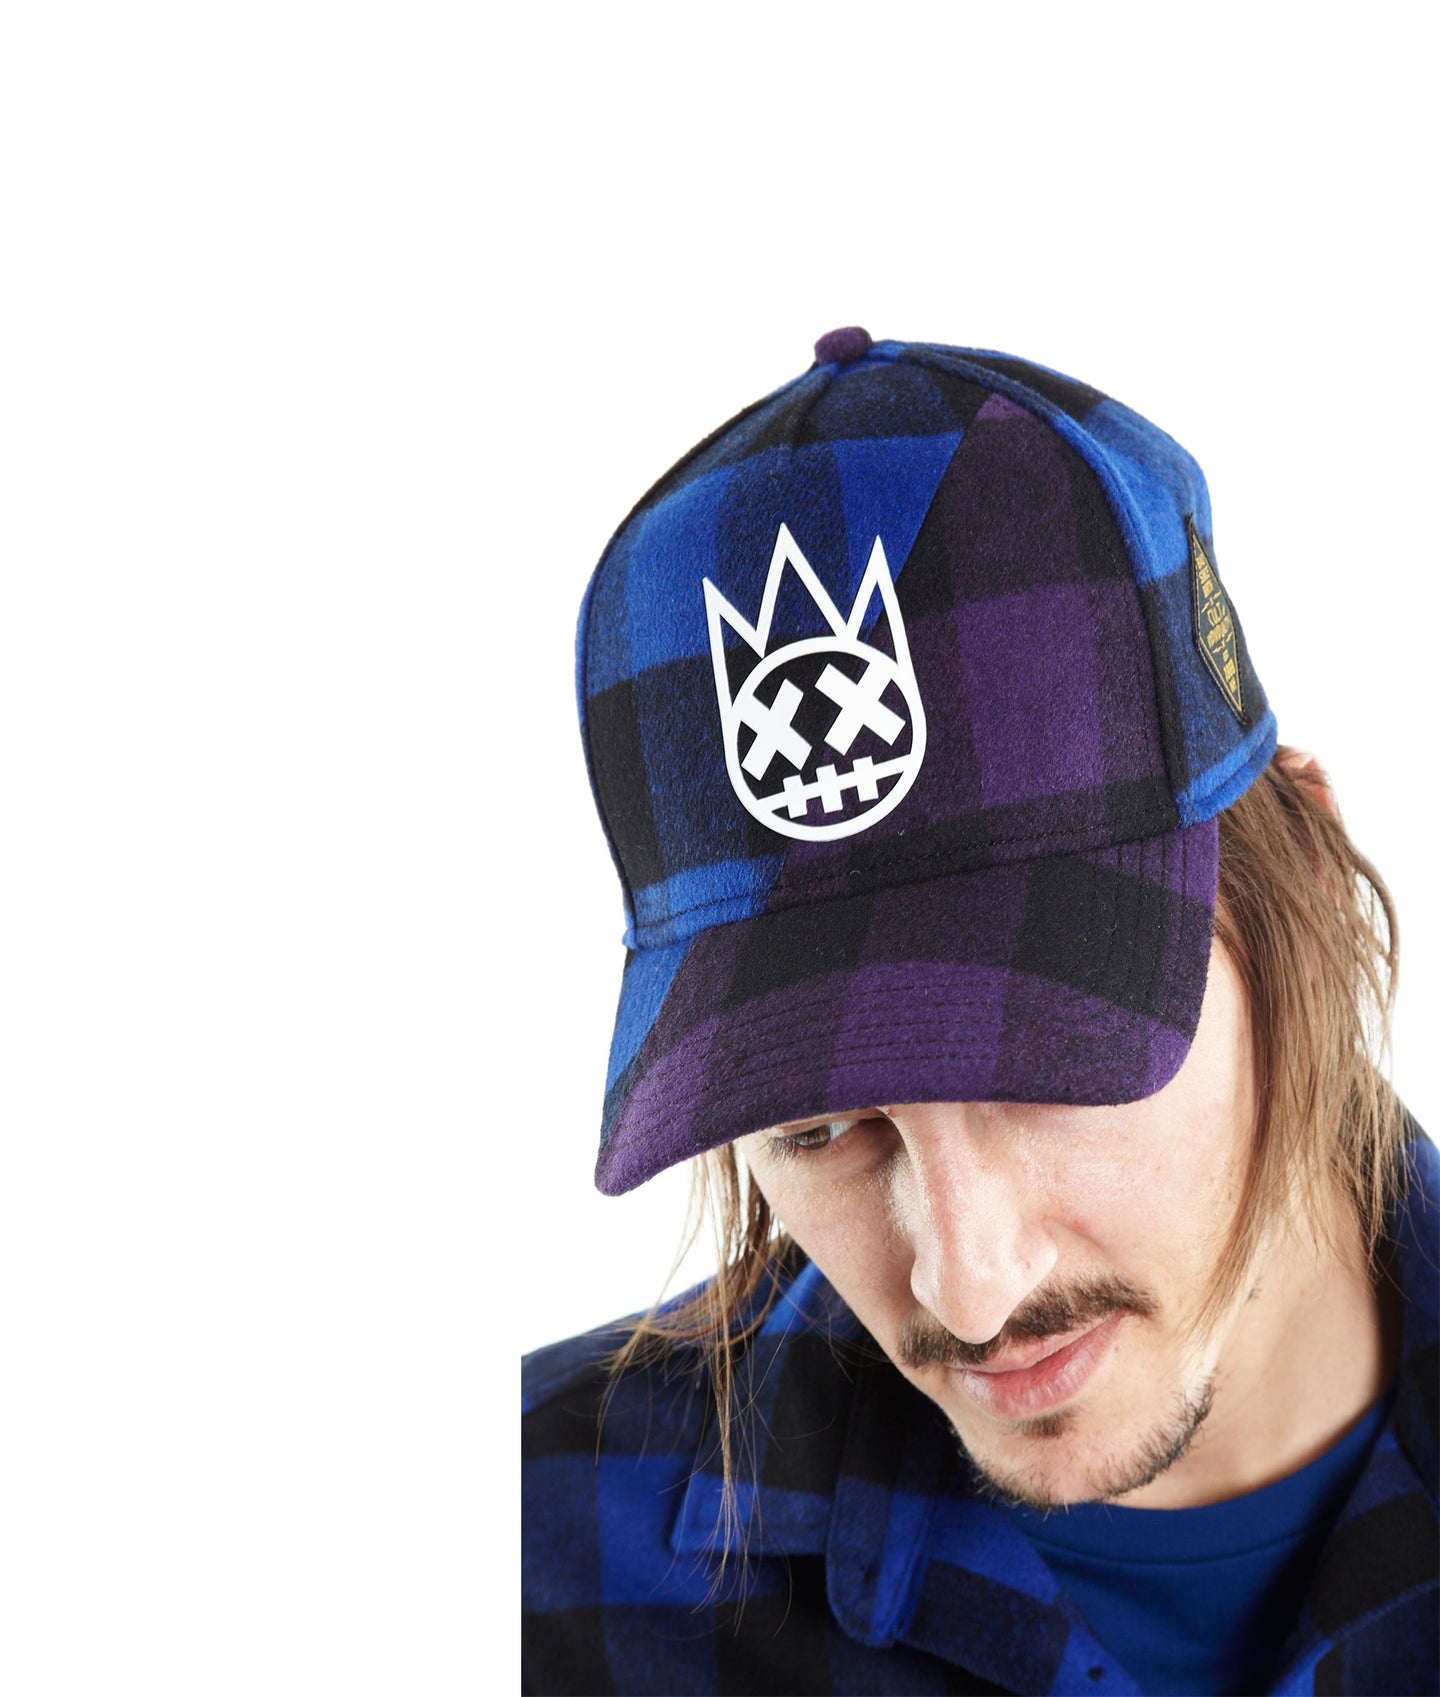 SPLIT PAD TRUCKER HAT IN PLAIDS